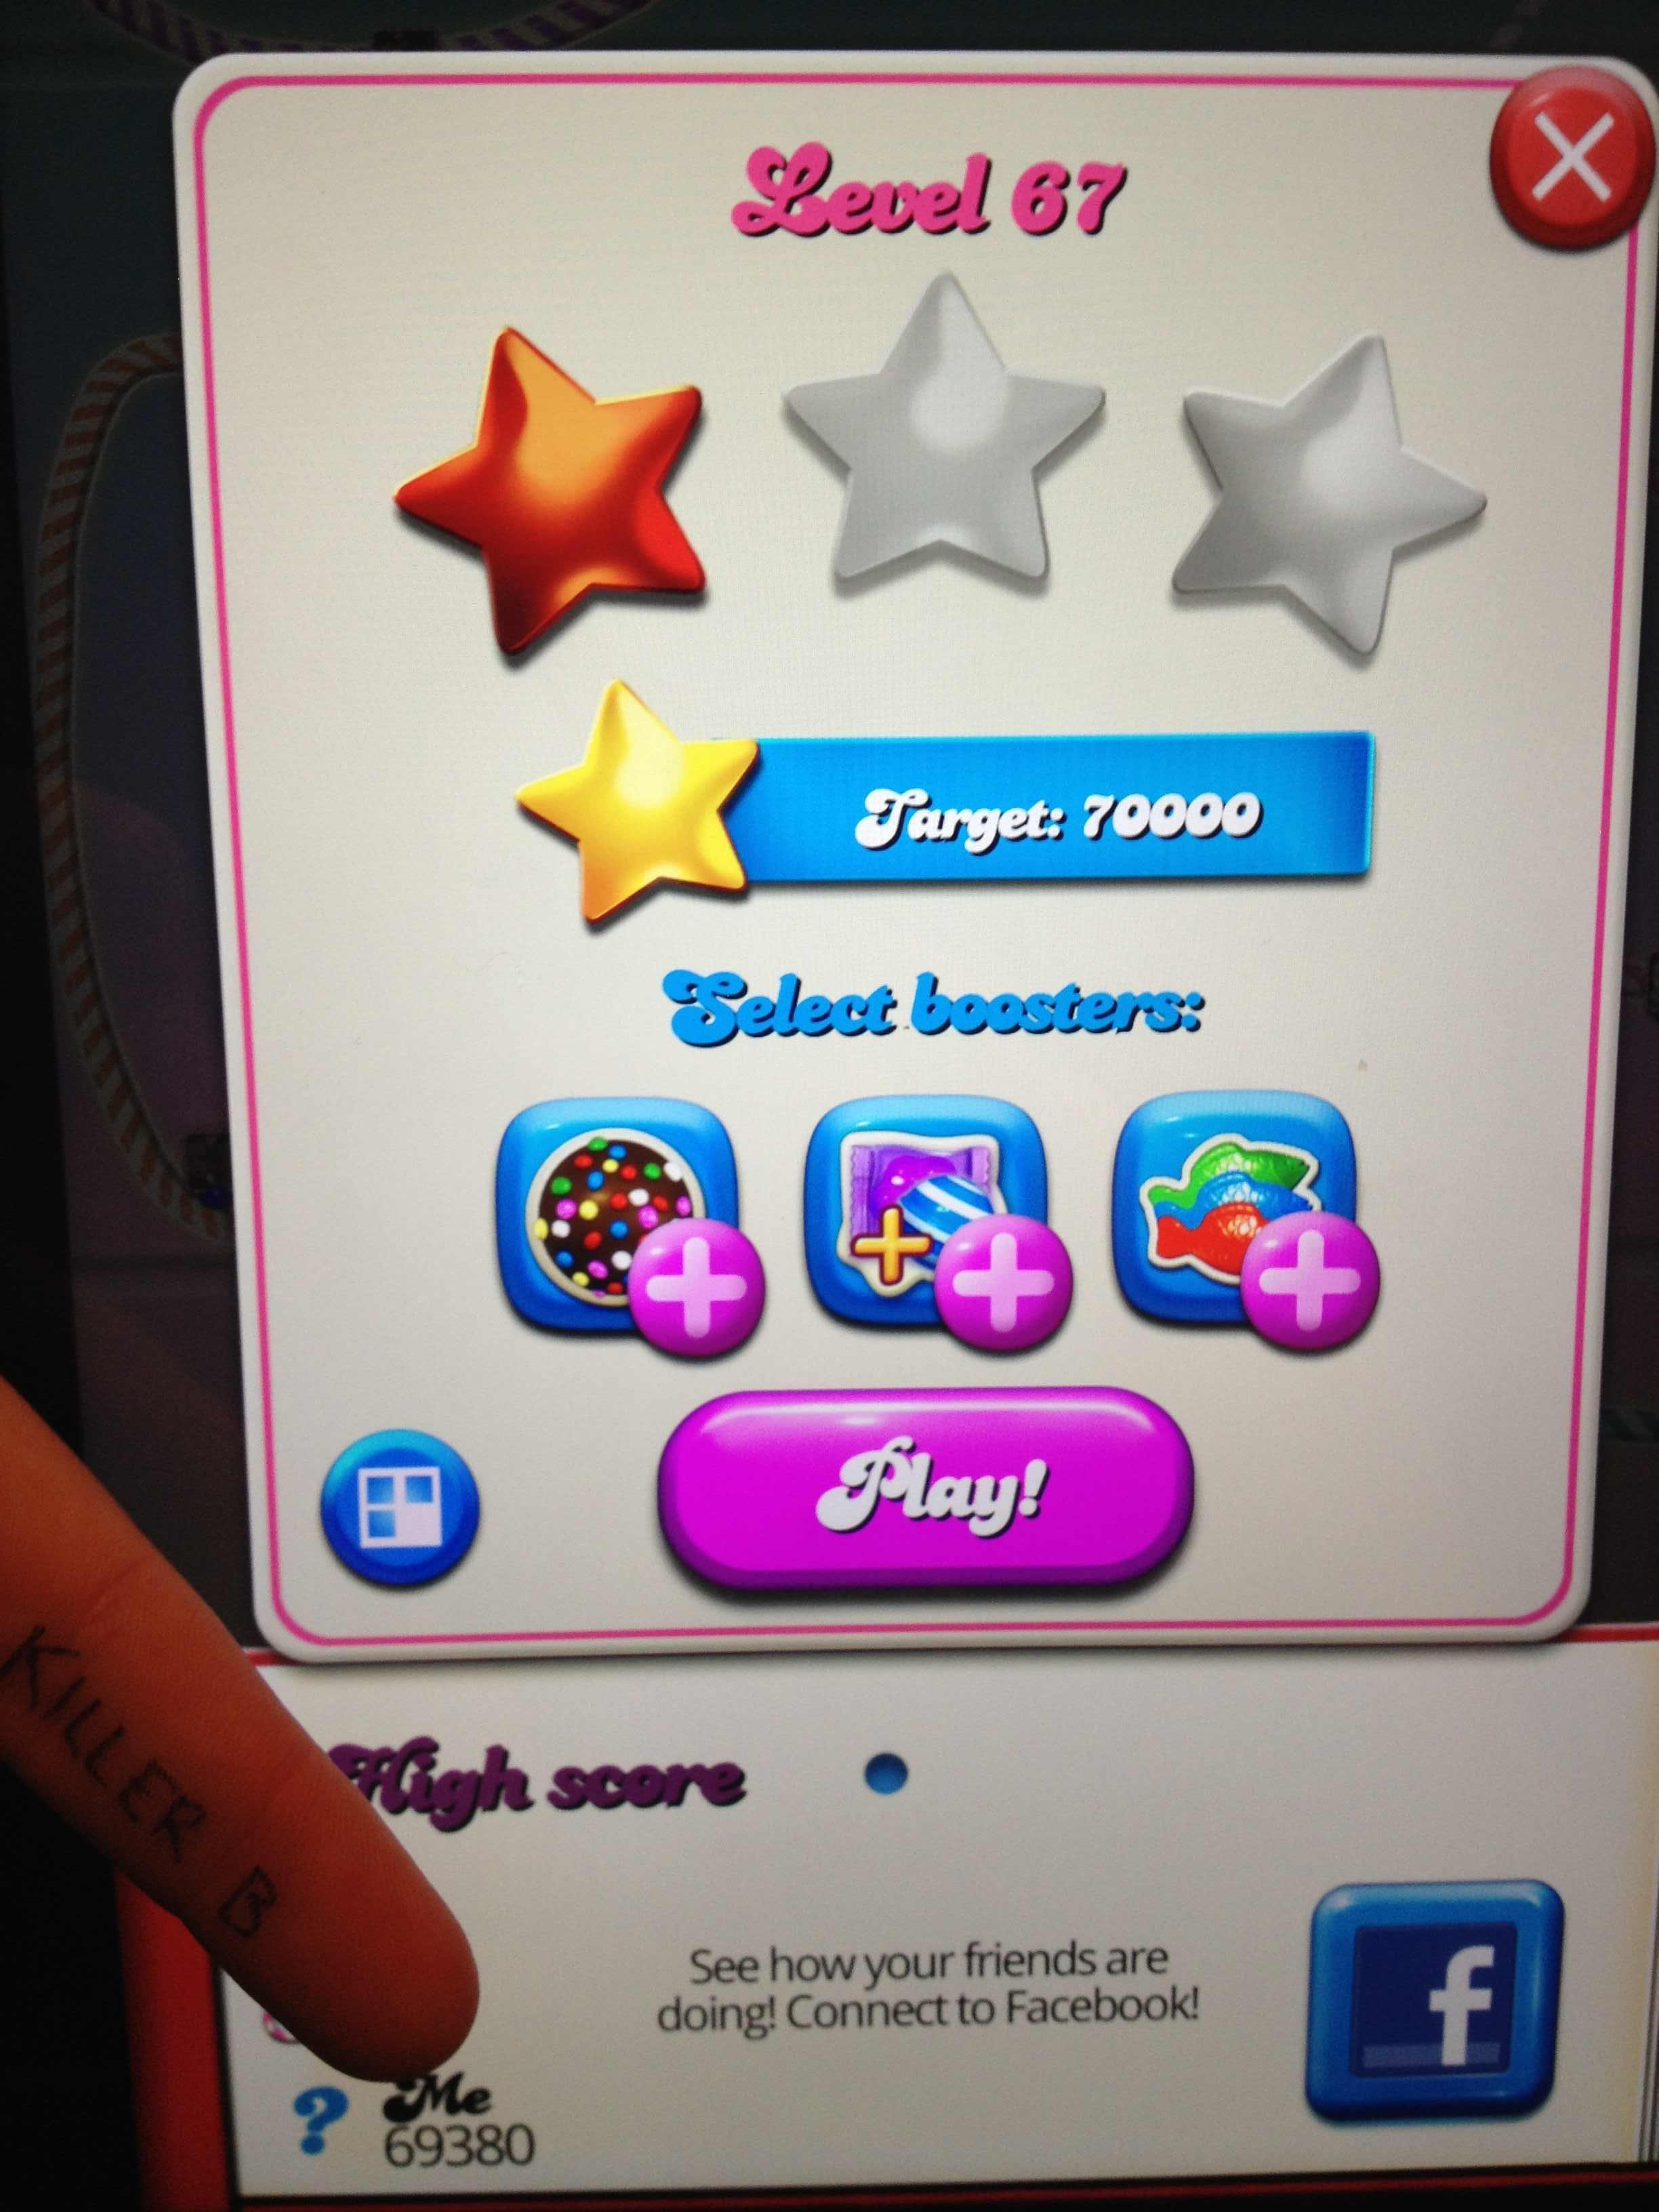 Candy Crush Saga: Level 067 69,380 points